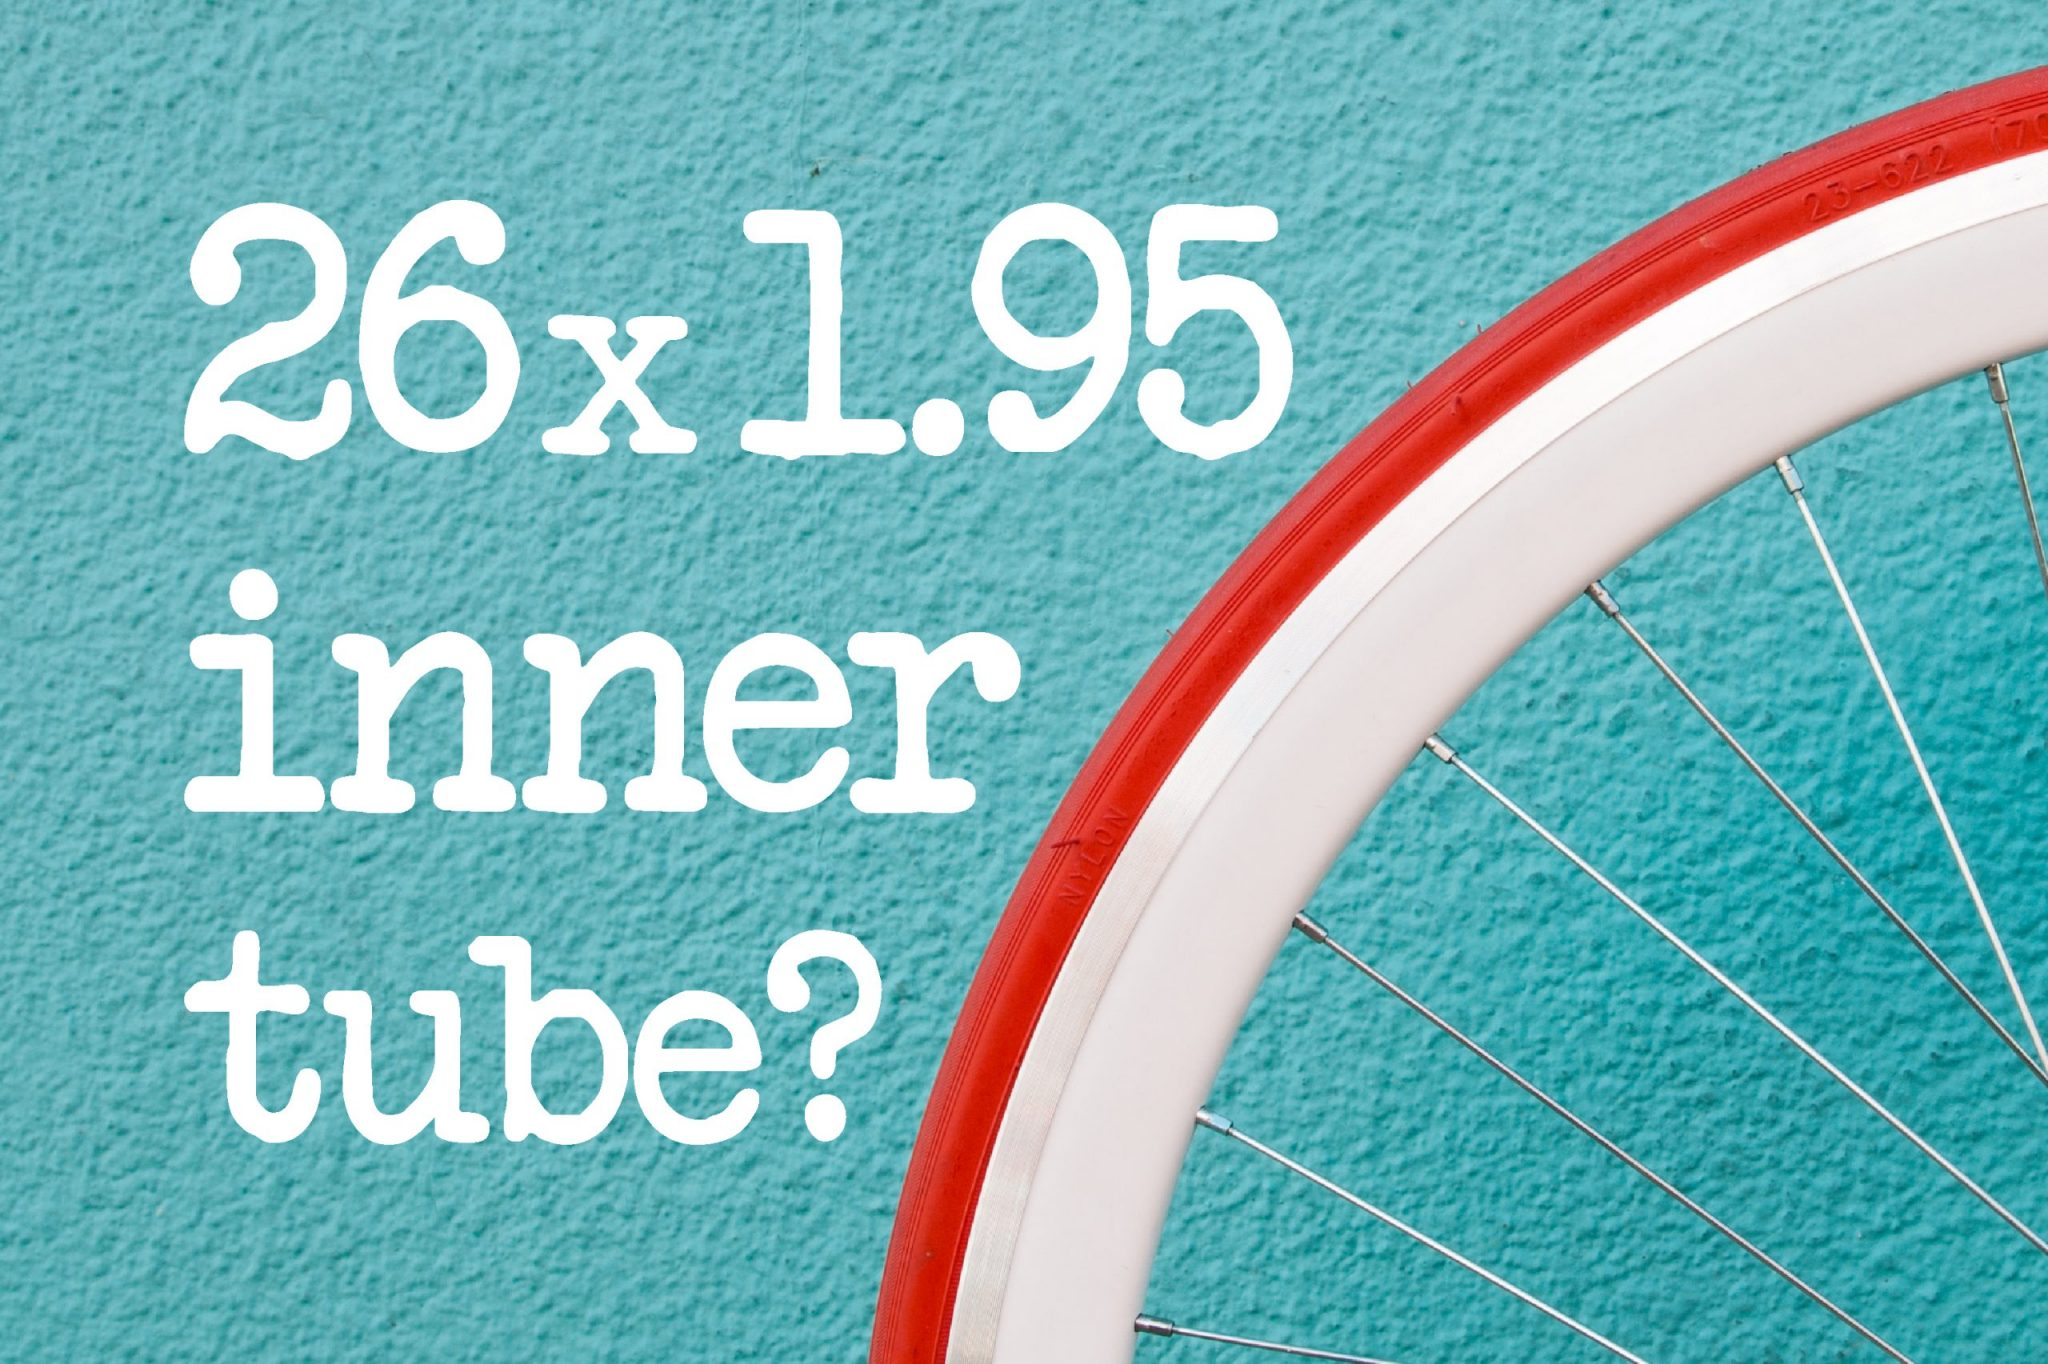 What Size Inner Tube For 26 x 1.95